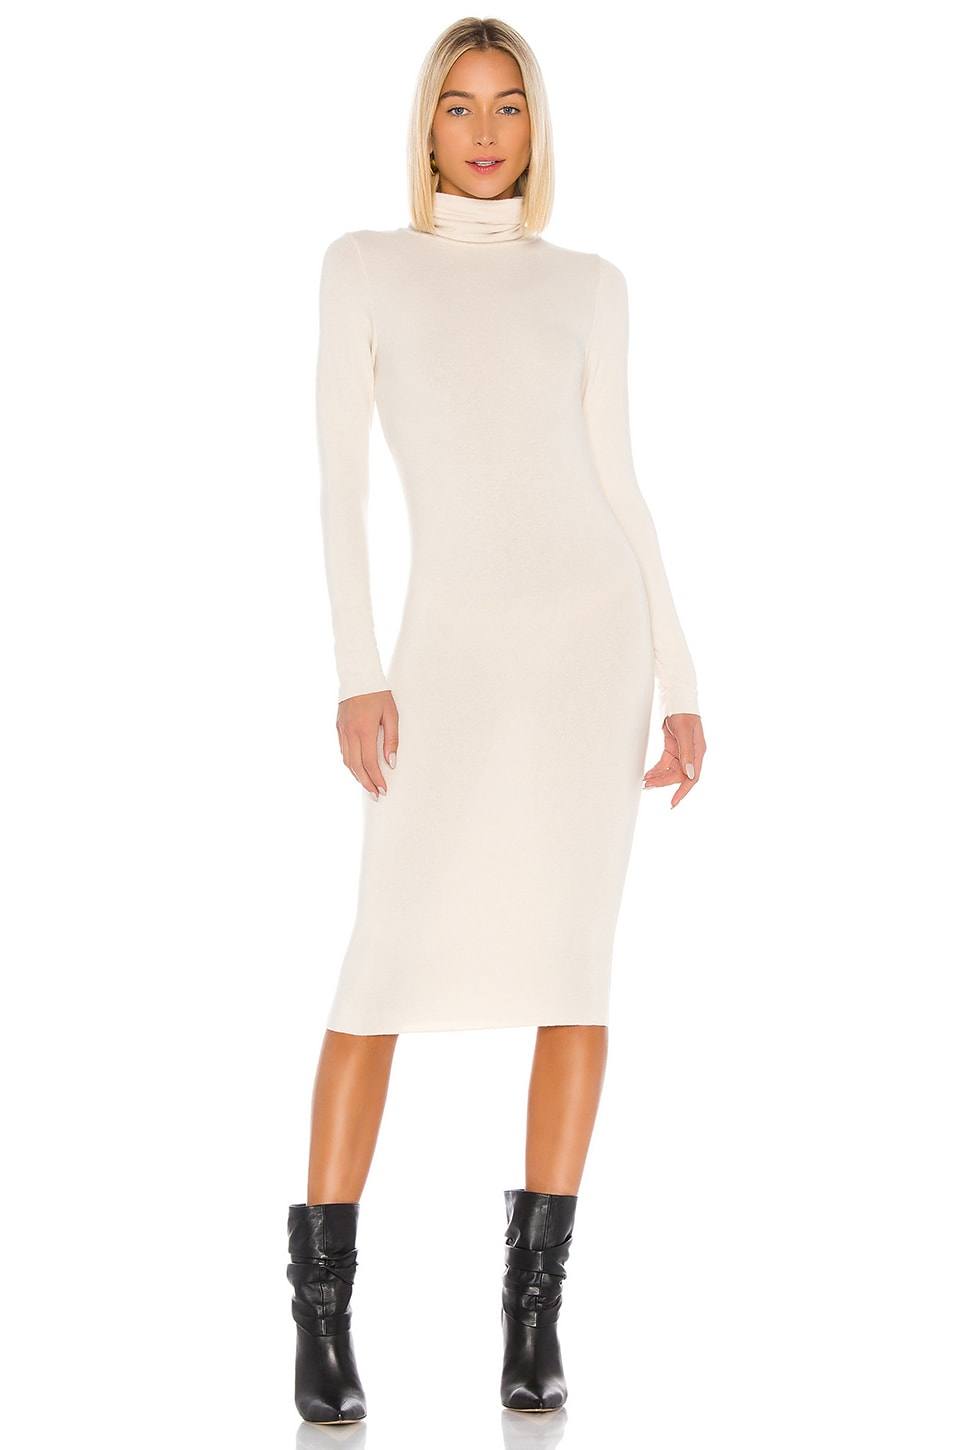 NSF Pia Turtleneck Dress in Parch